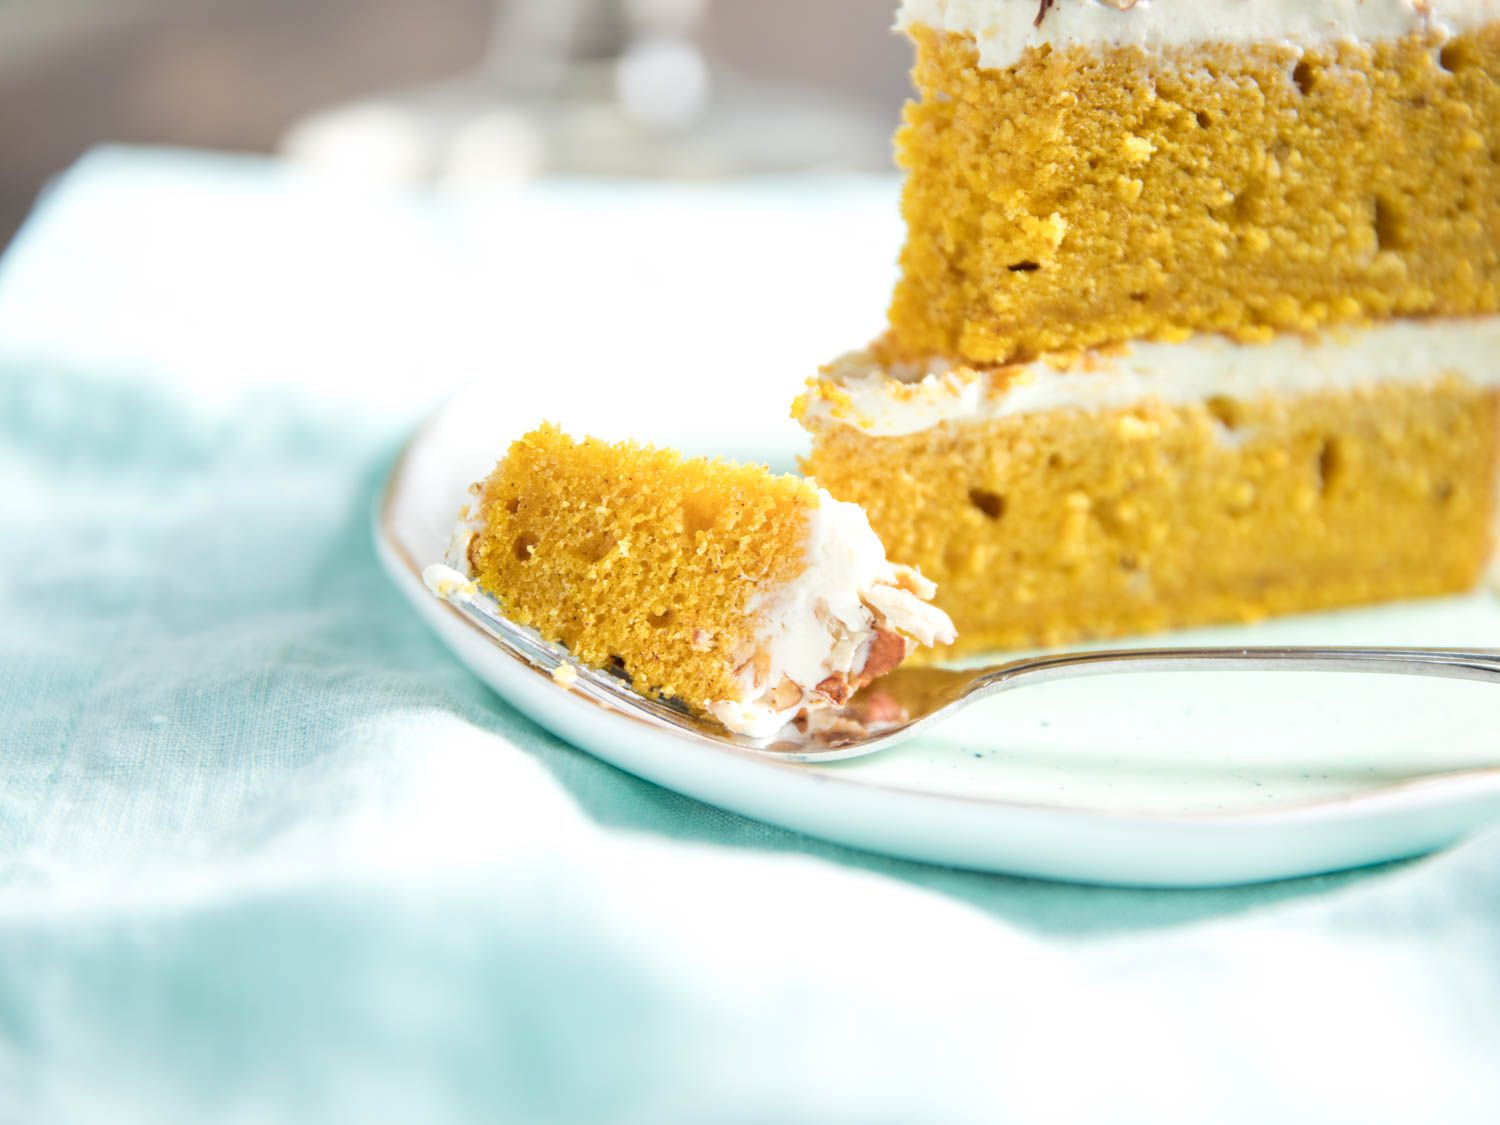 A fork spearing a bite of pumpkin layer cake, next to a wedge of cake on a plate